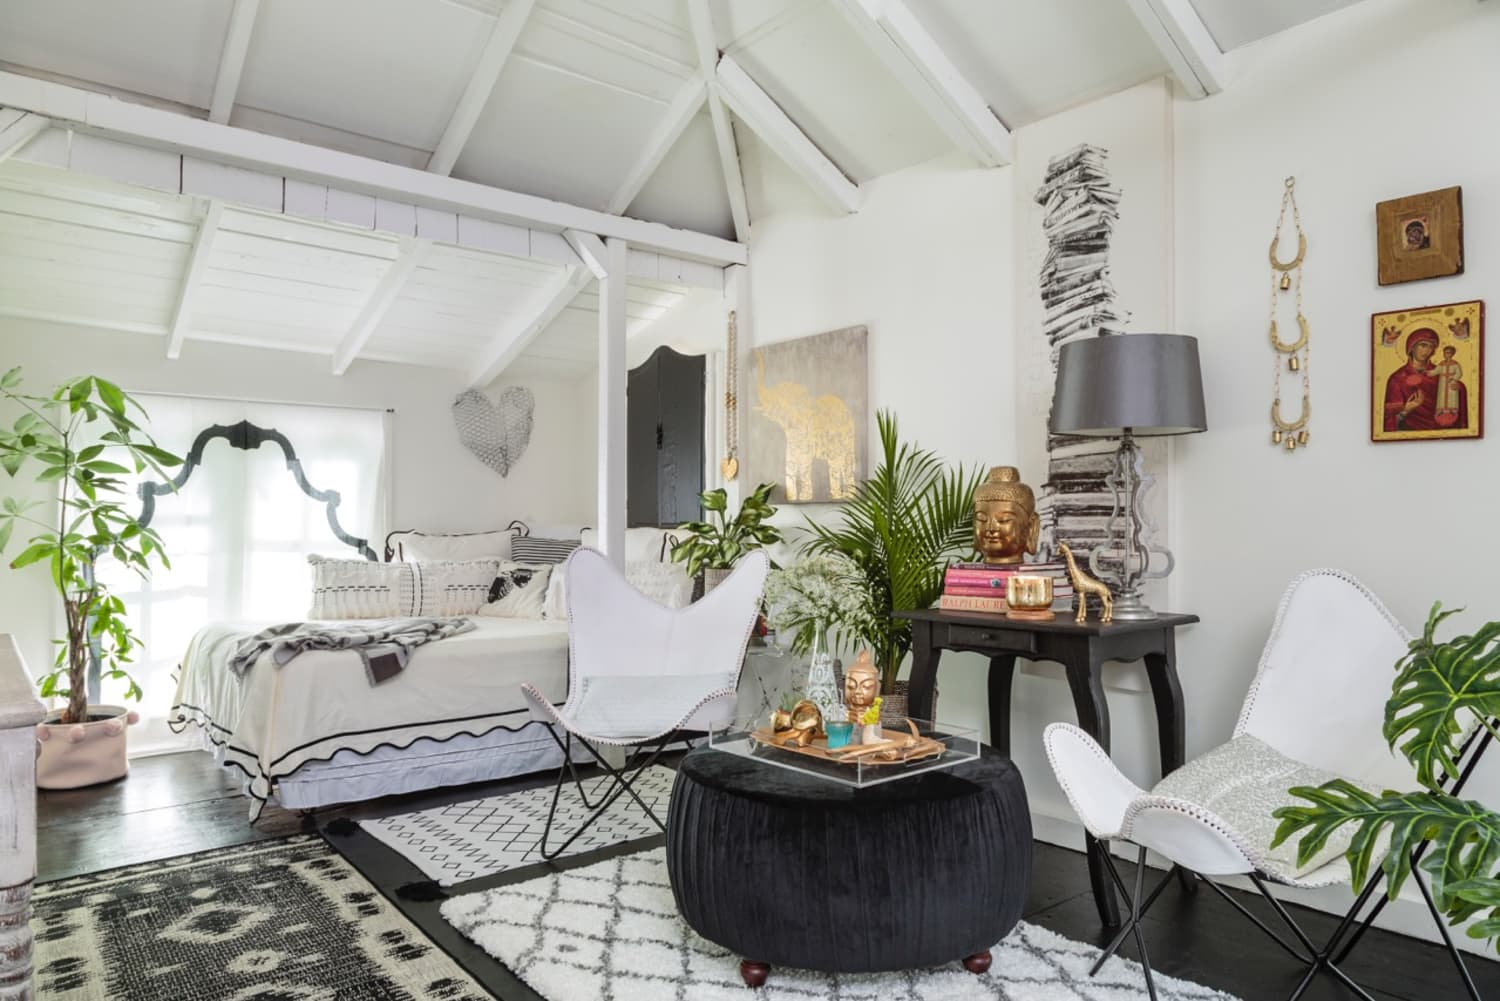 A 450-Square-Foot Formerly Derelict Garage Is Now a Luxe Boho Guesthouse